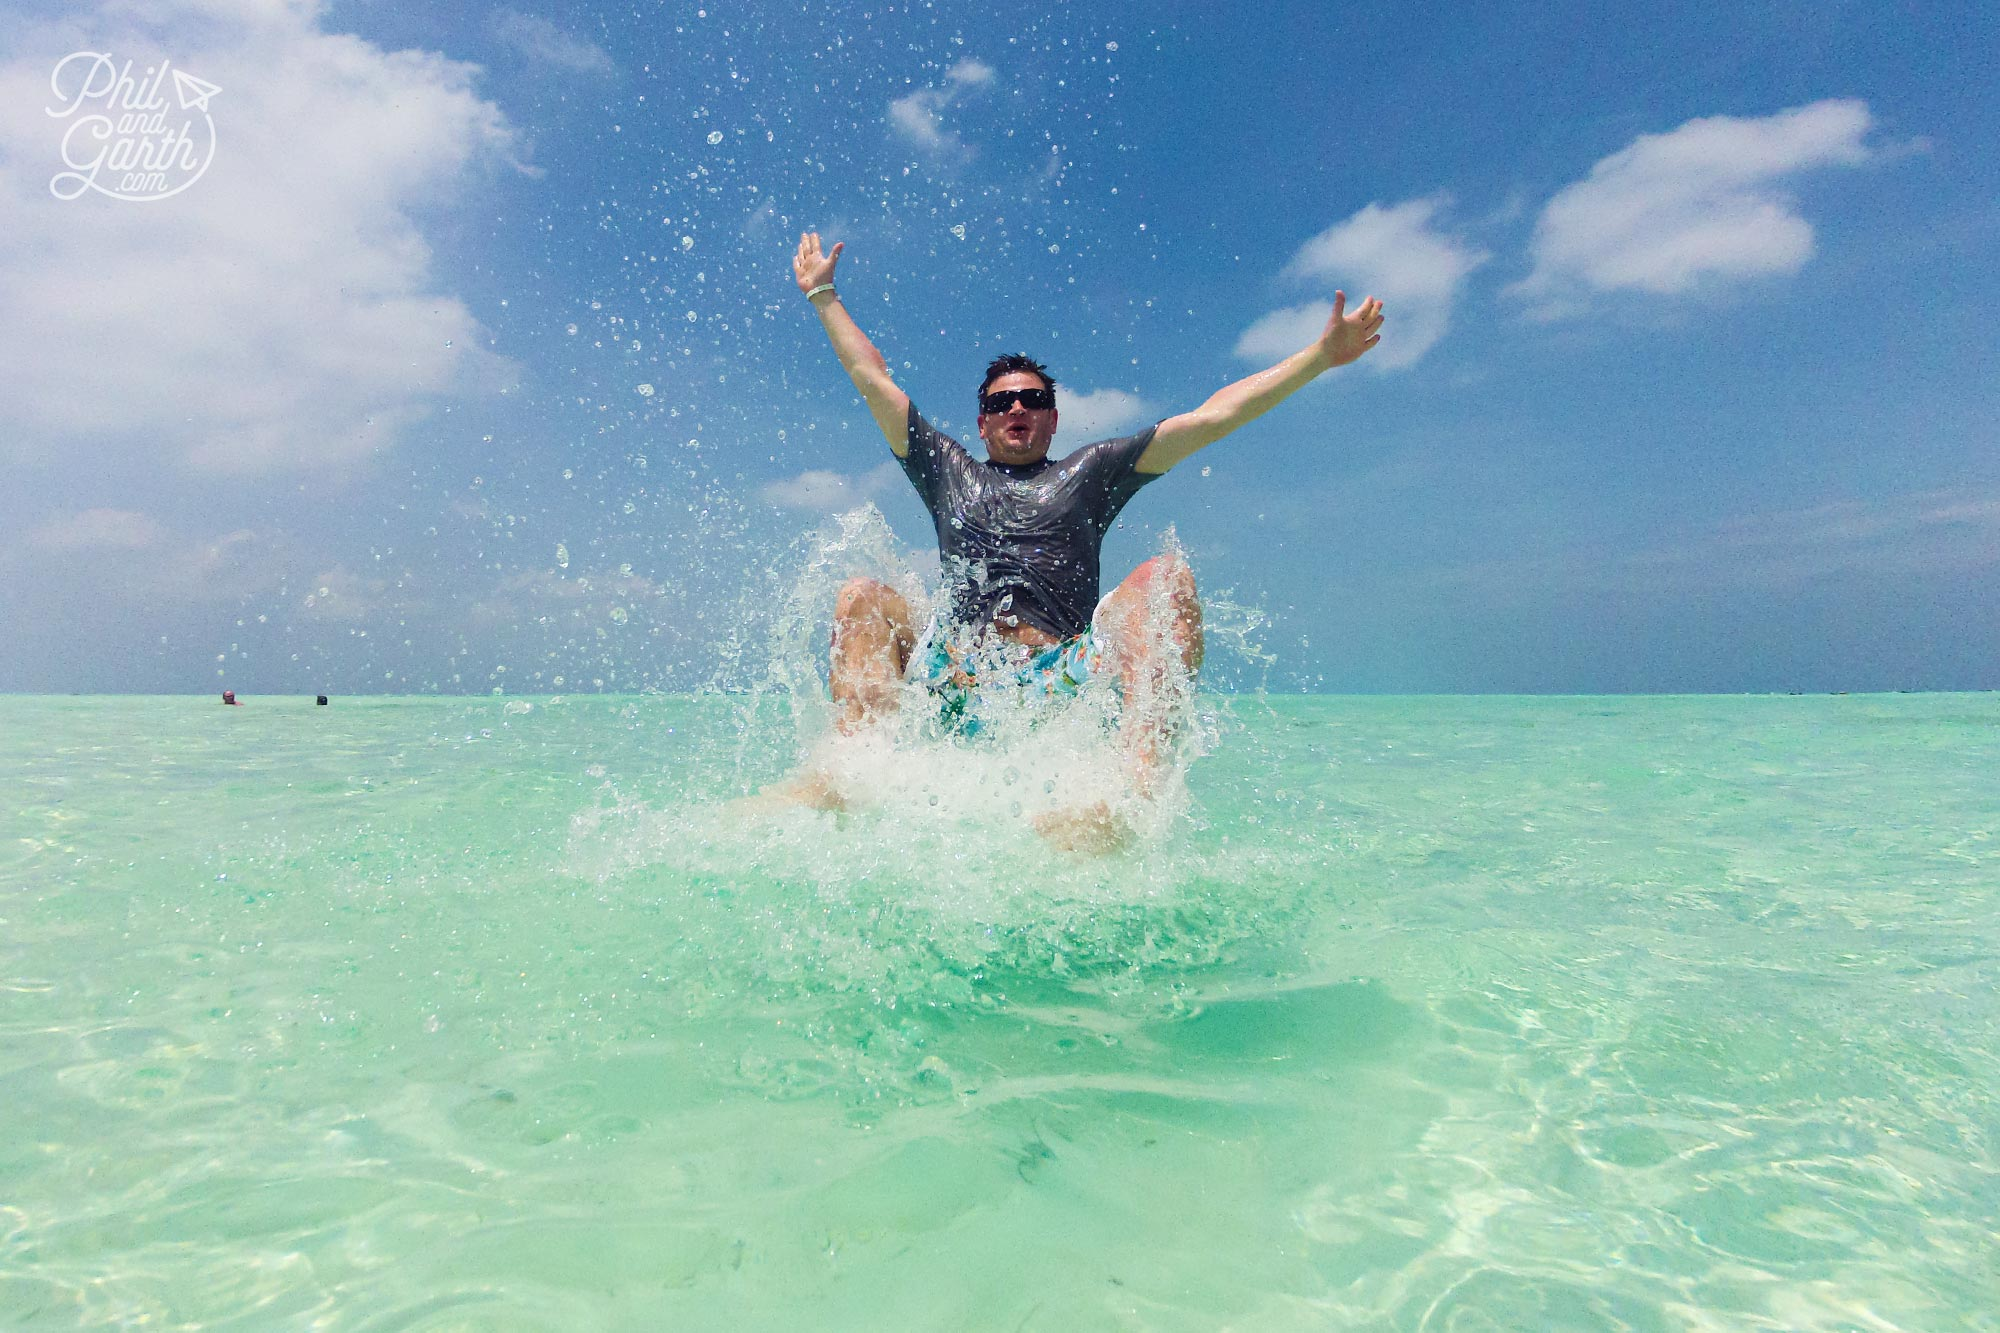 Phil messing about in the water